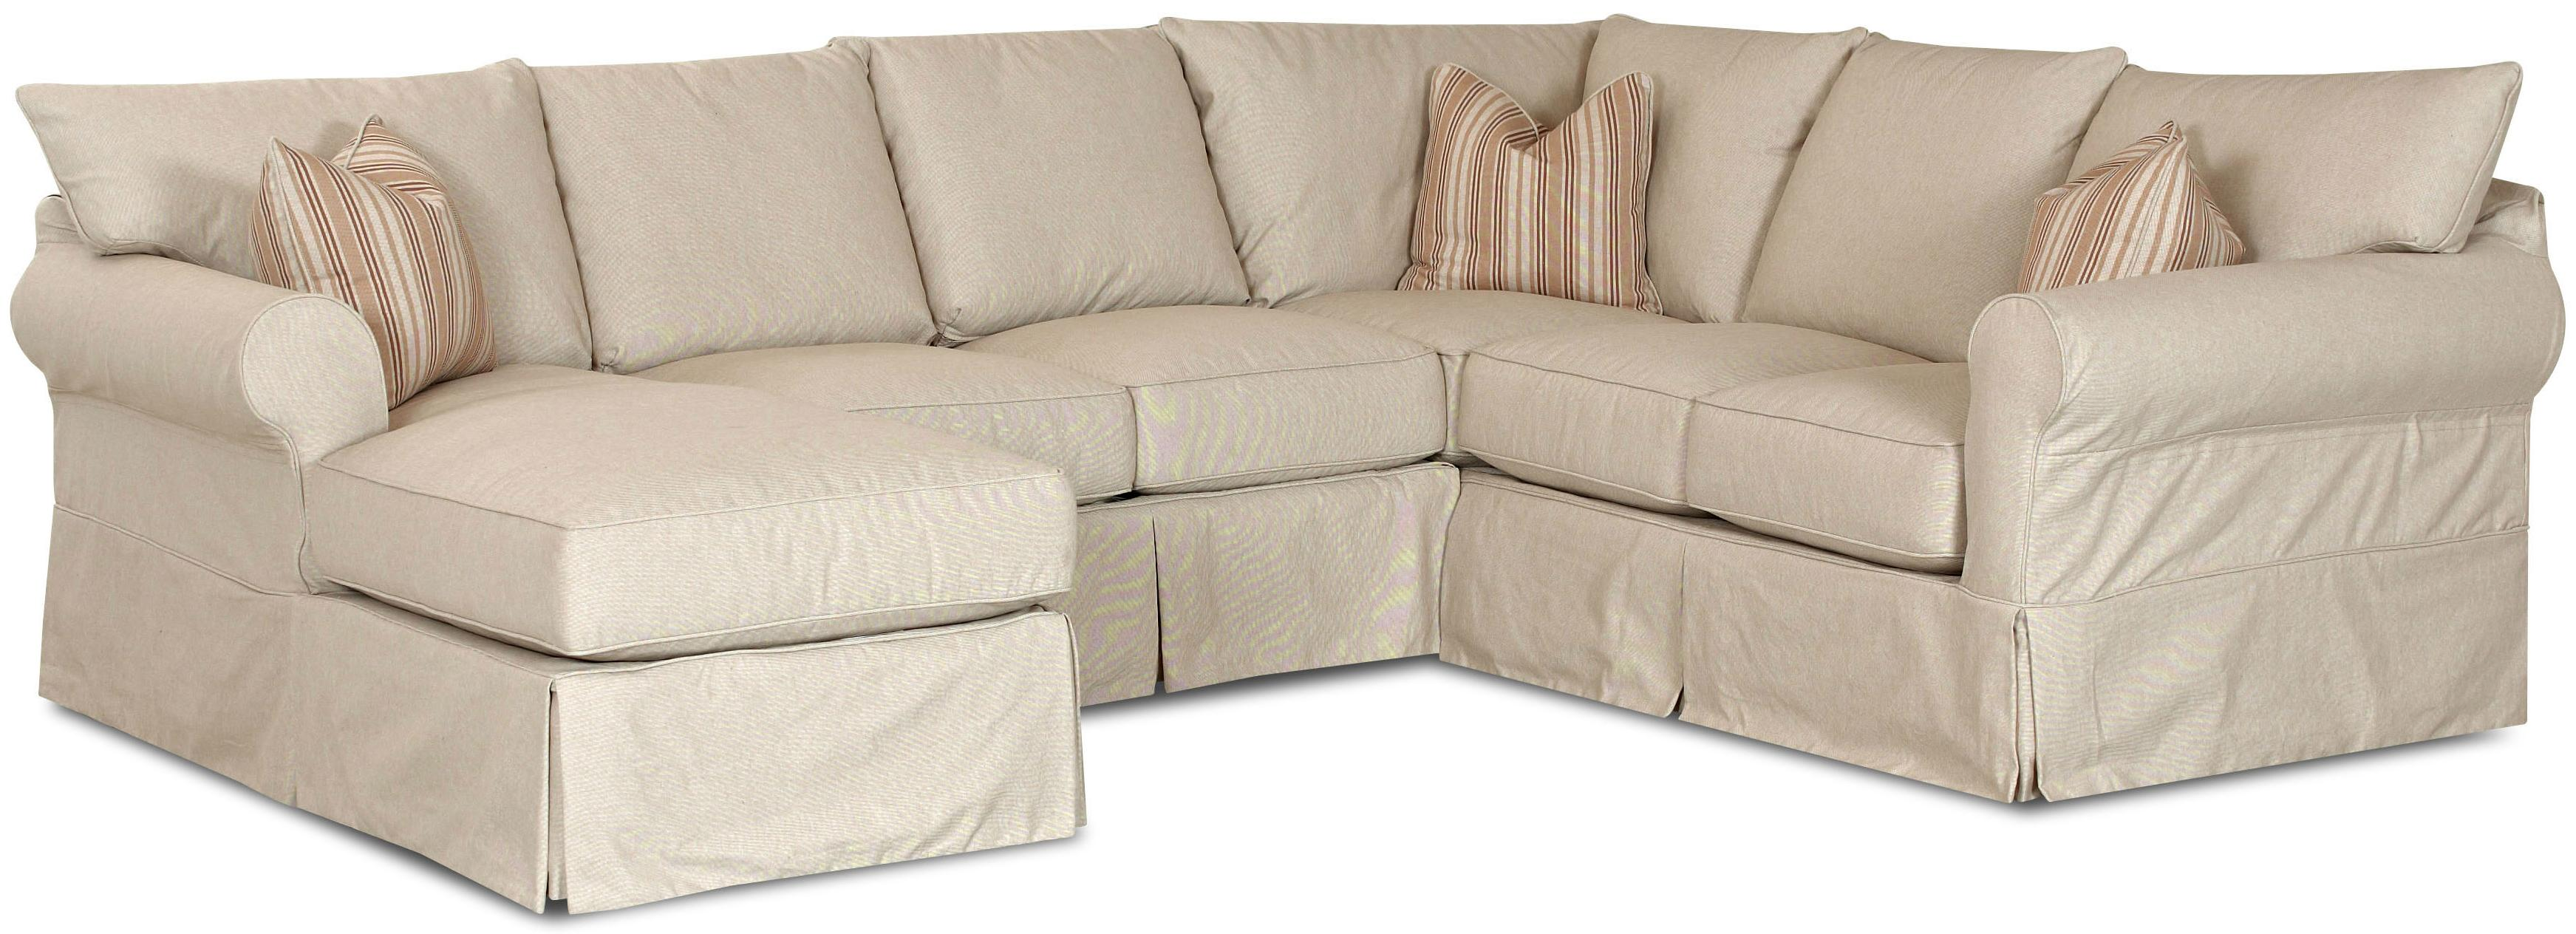 Amazing couch covers with cushions for sectionals  for living room with furniture covers for sectionals